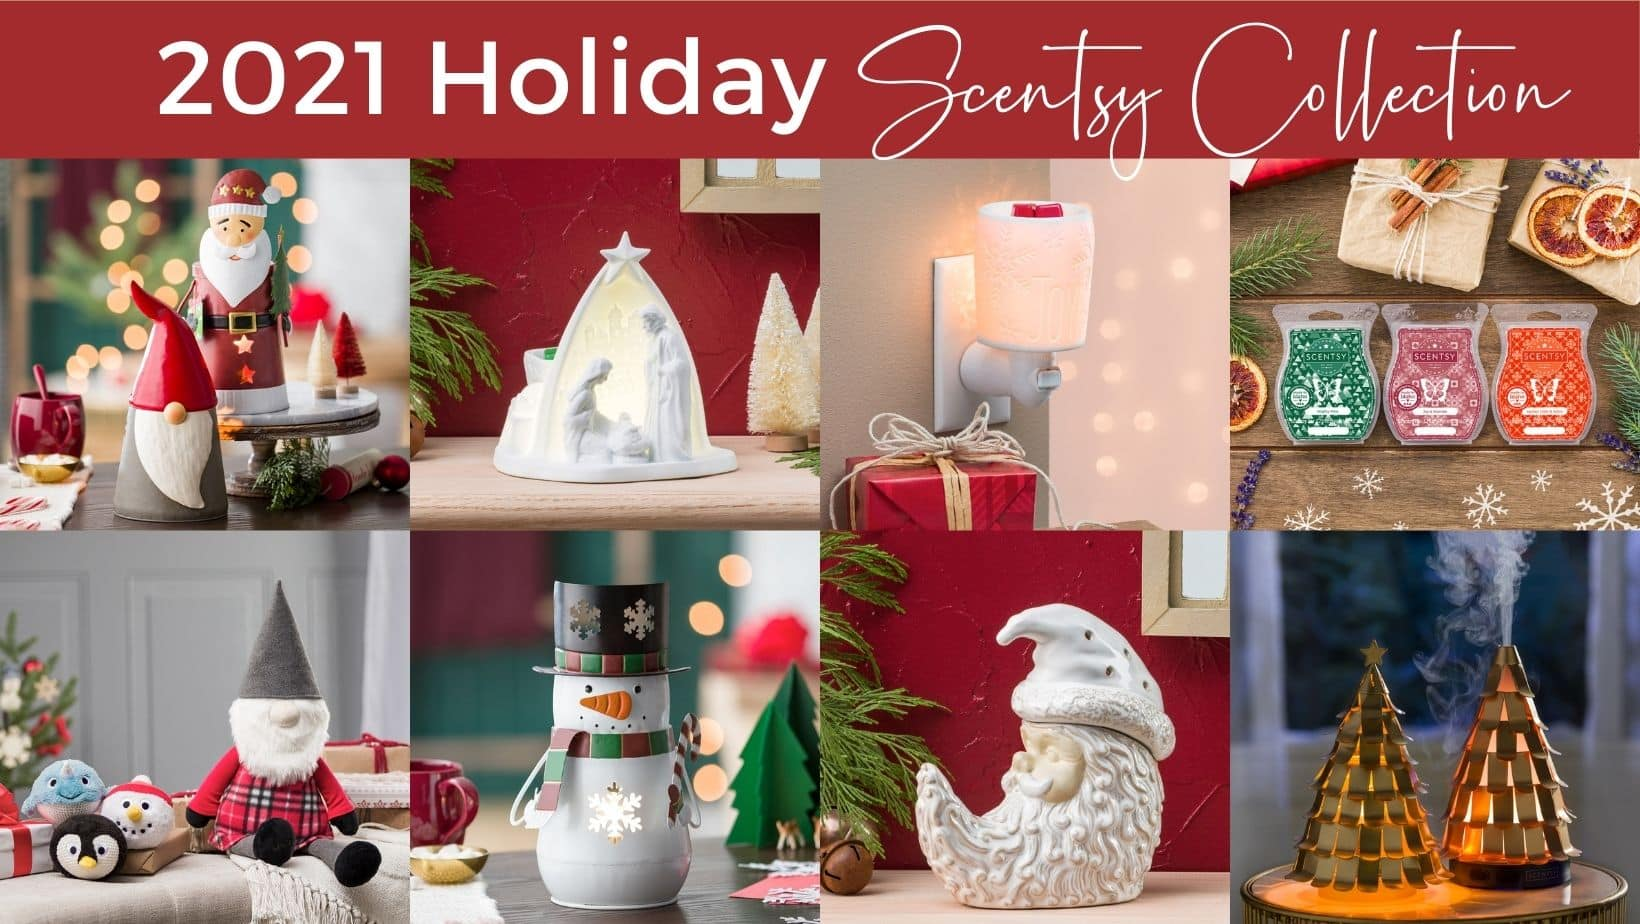 Scentsy 2021 Holiday Collection Collection